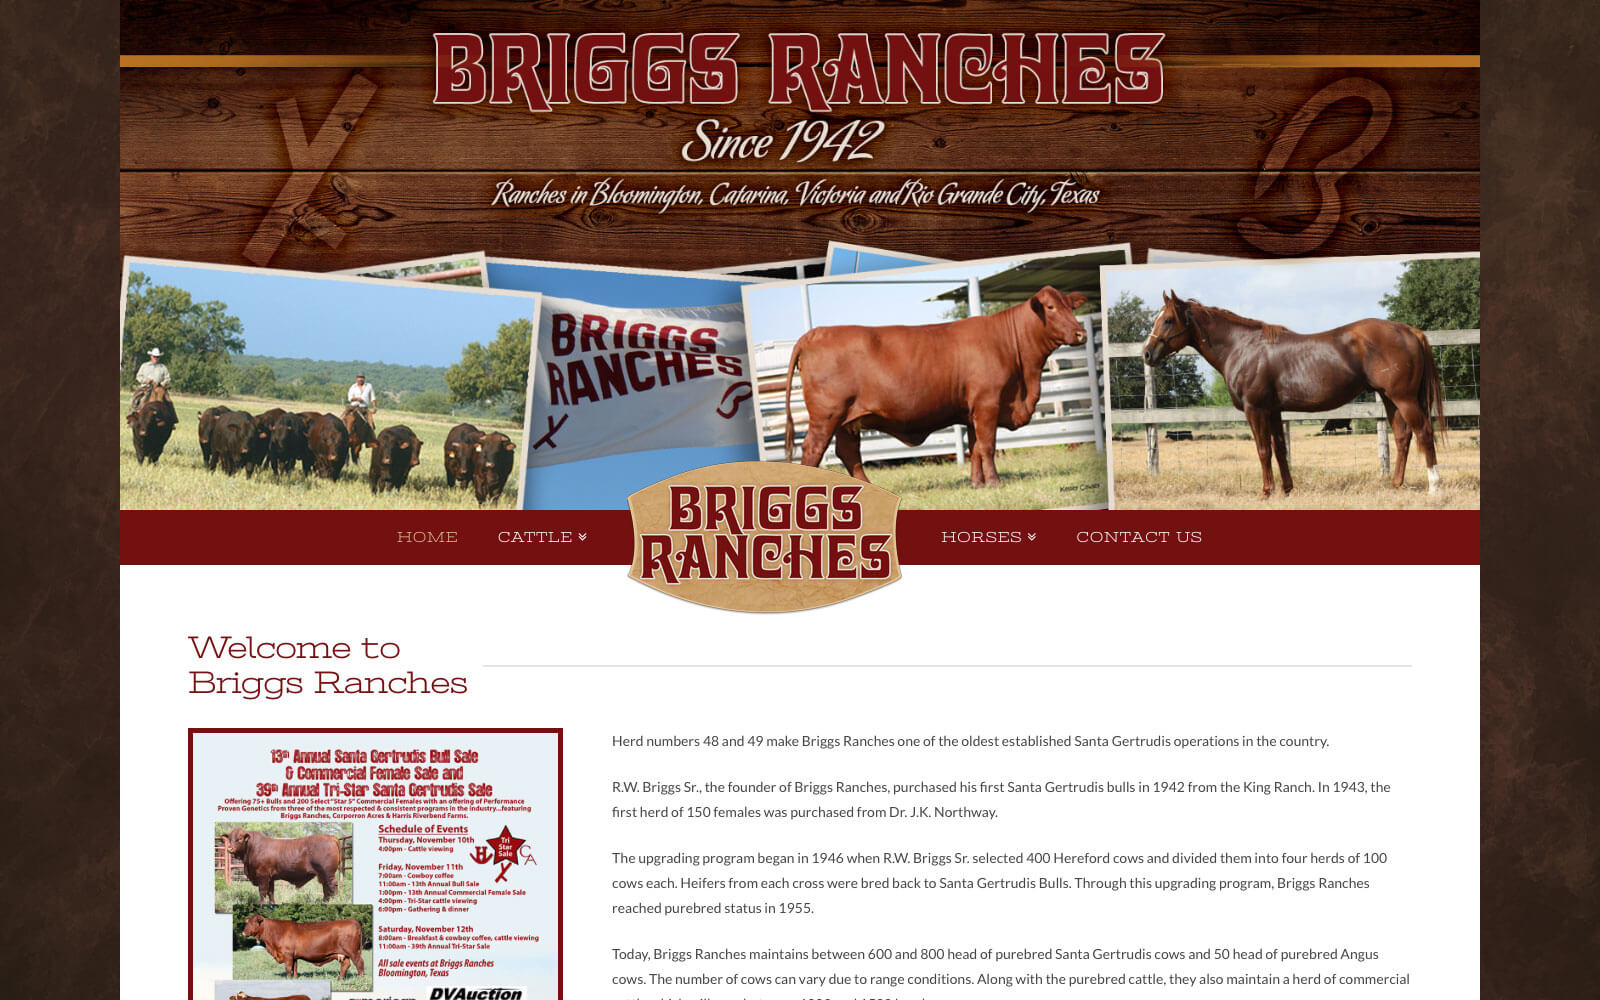 Briggs ranches ranch house designs inc for Ranch house designs inc